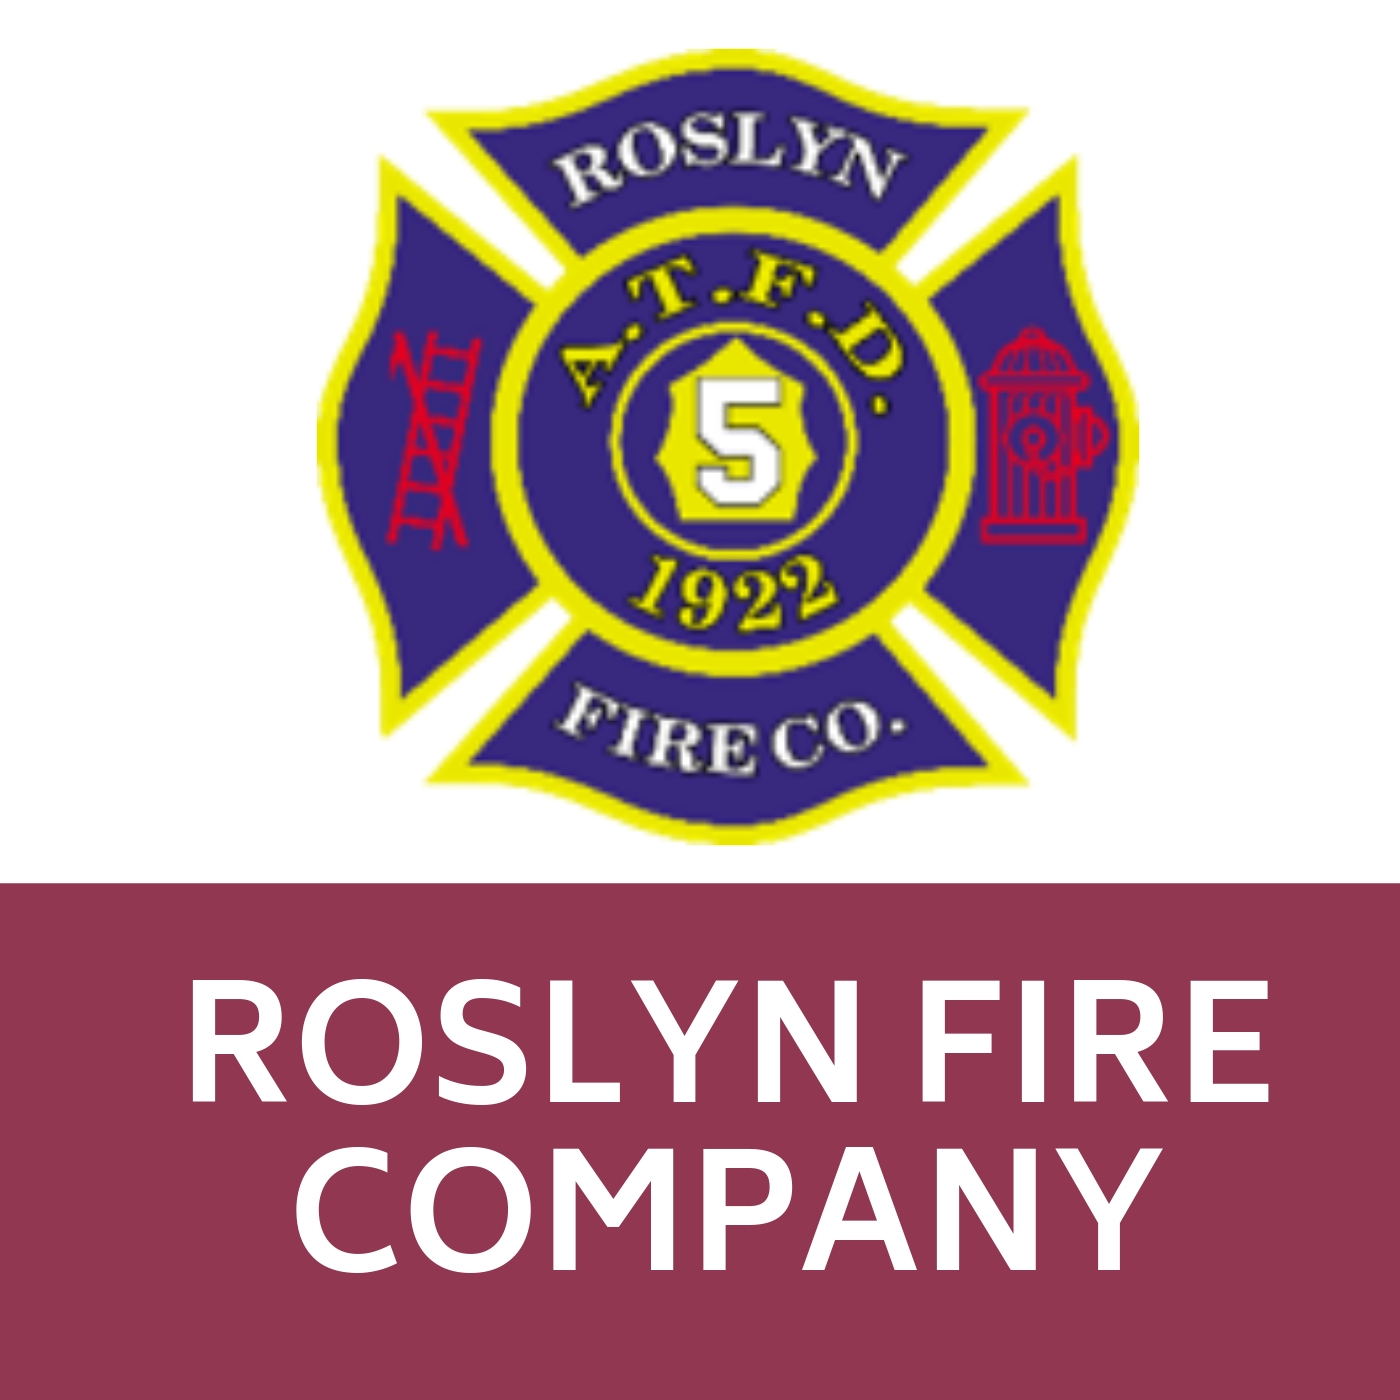 Roslyn Fire Company Symbol that links to https://roslynfireco.com/main/.